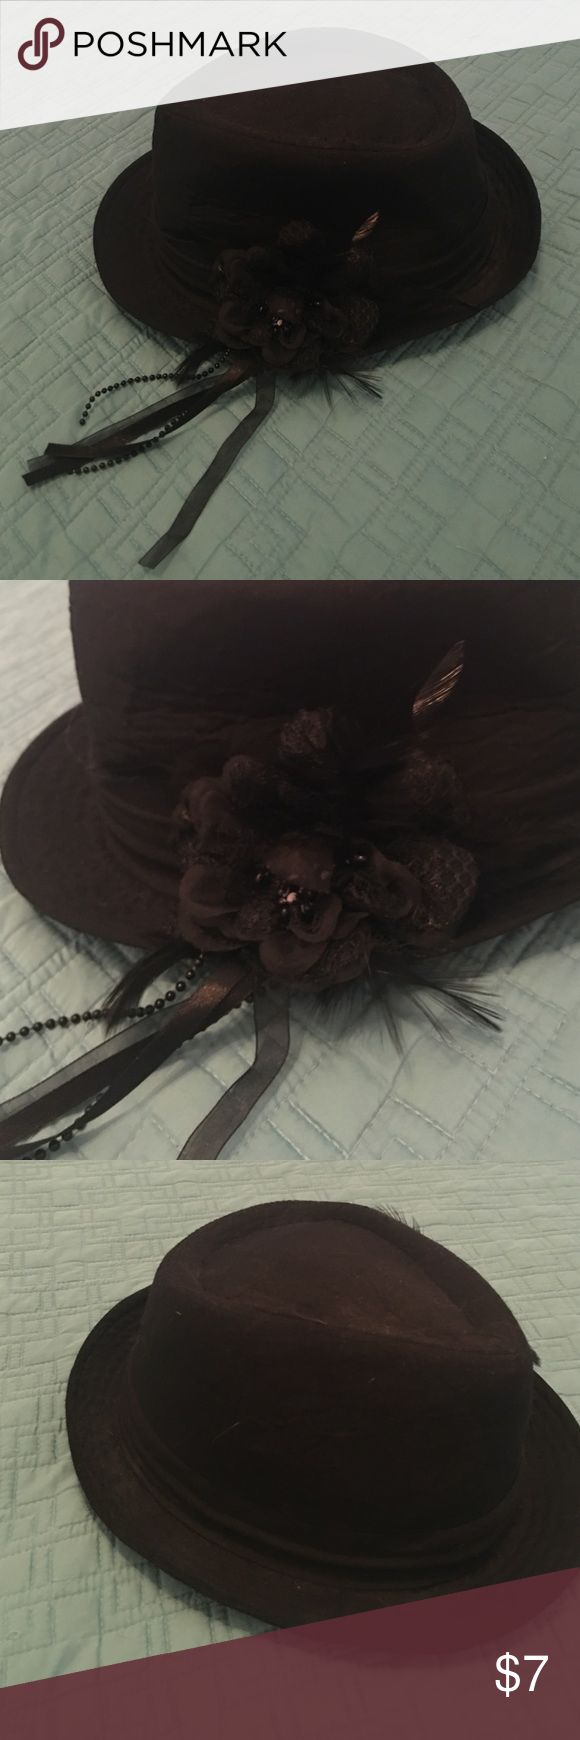 Black Fedora With flower, beads and lace embellishment. Worn once to my bday party! :) Accessories Hats